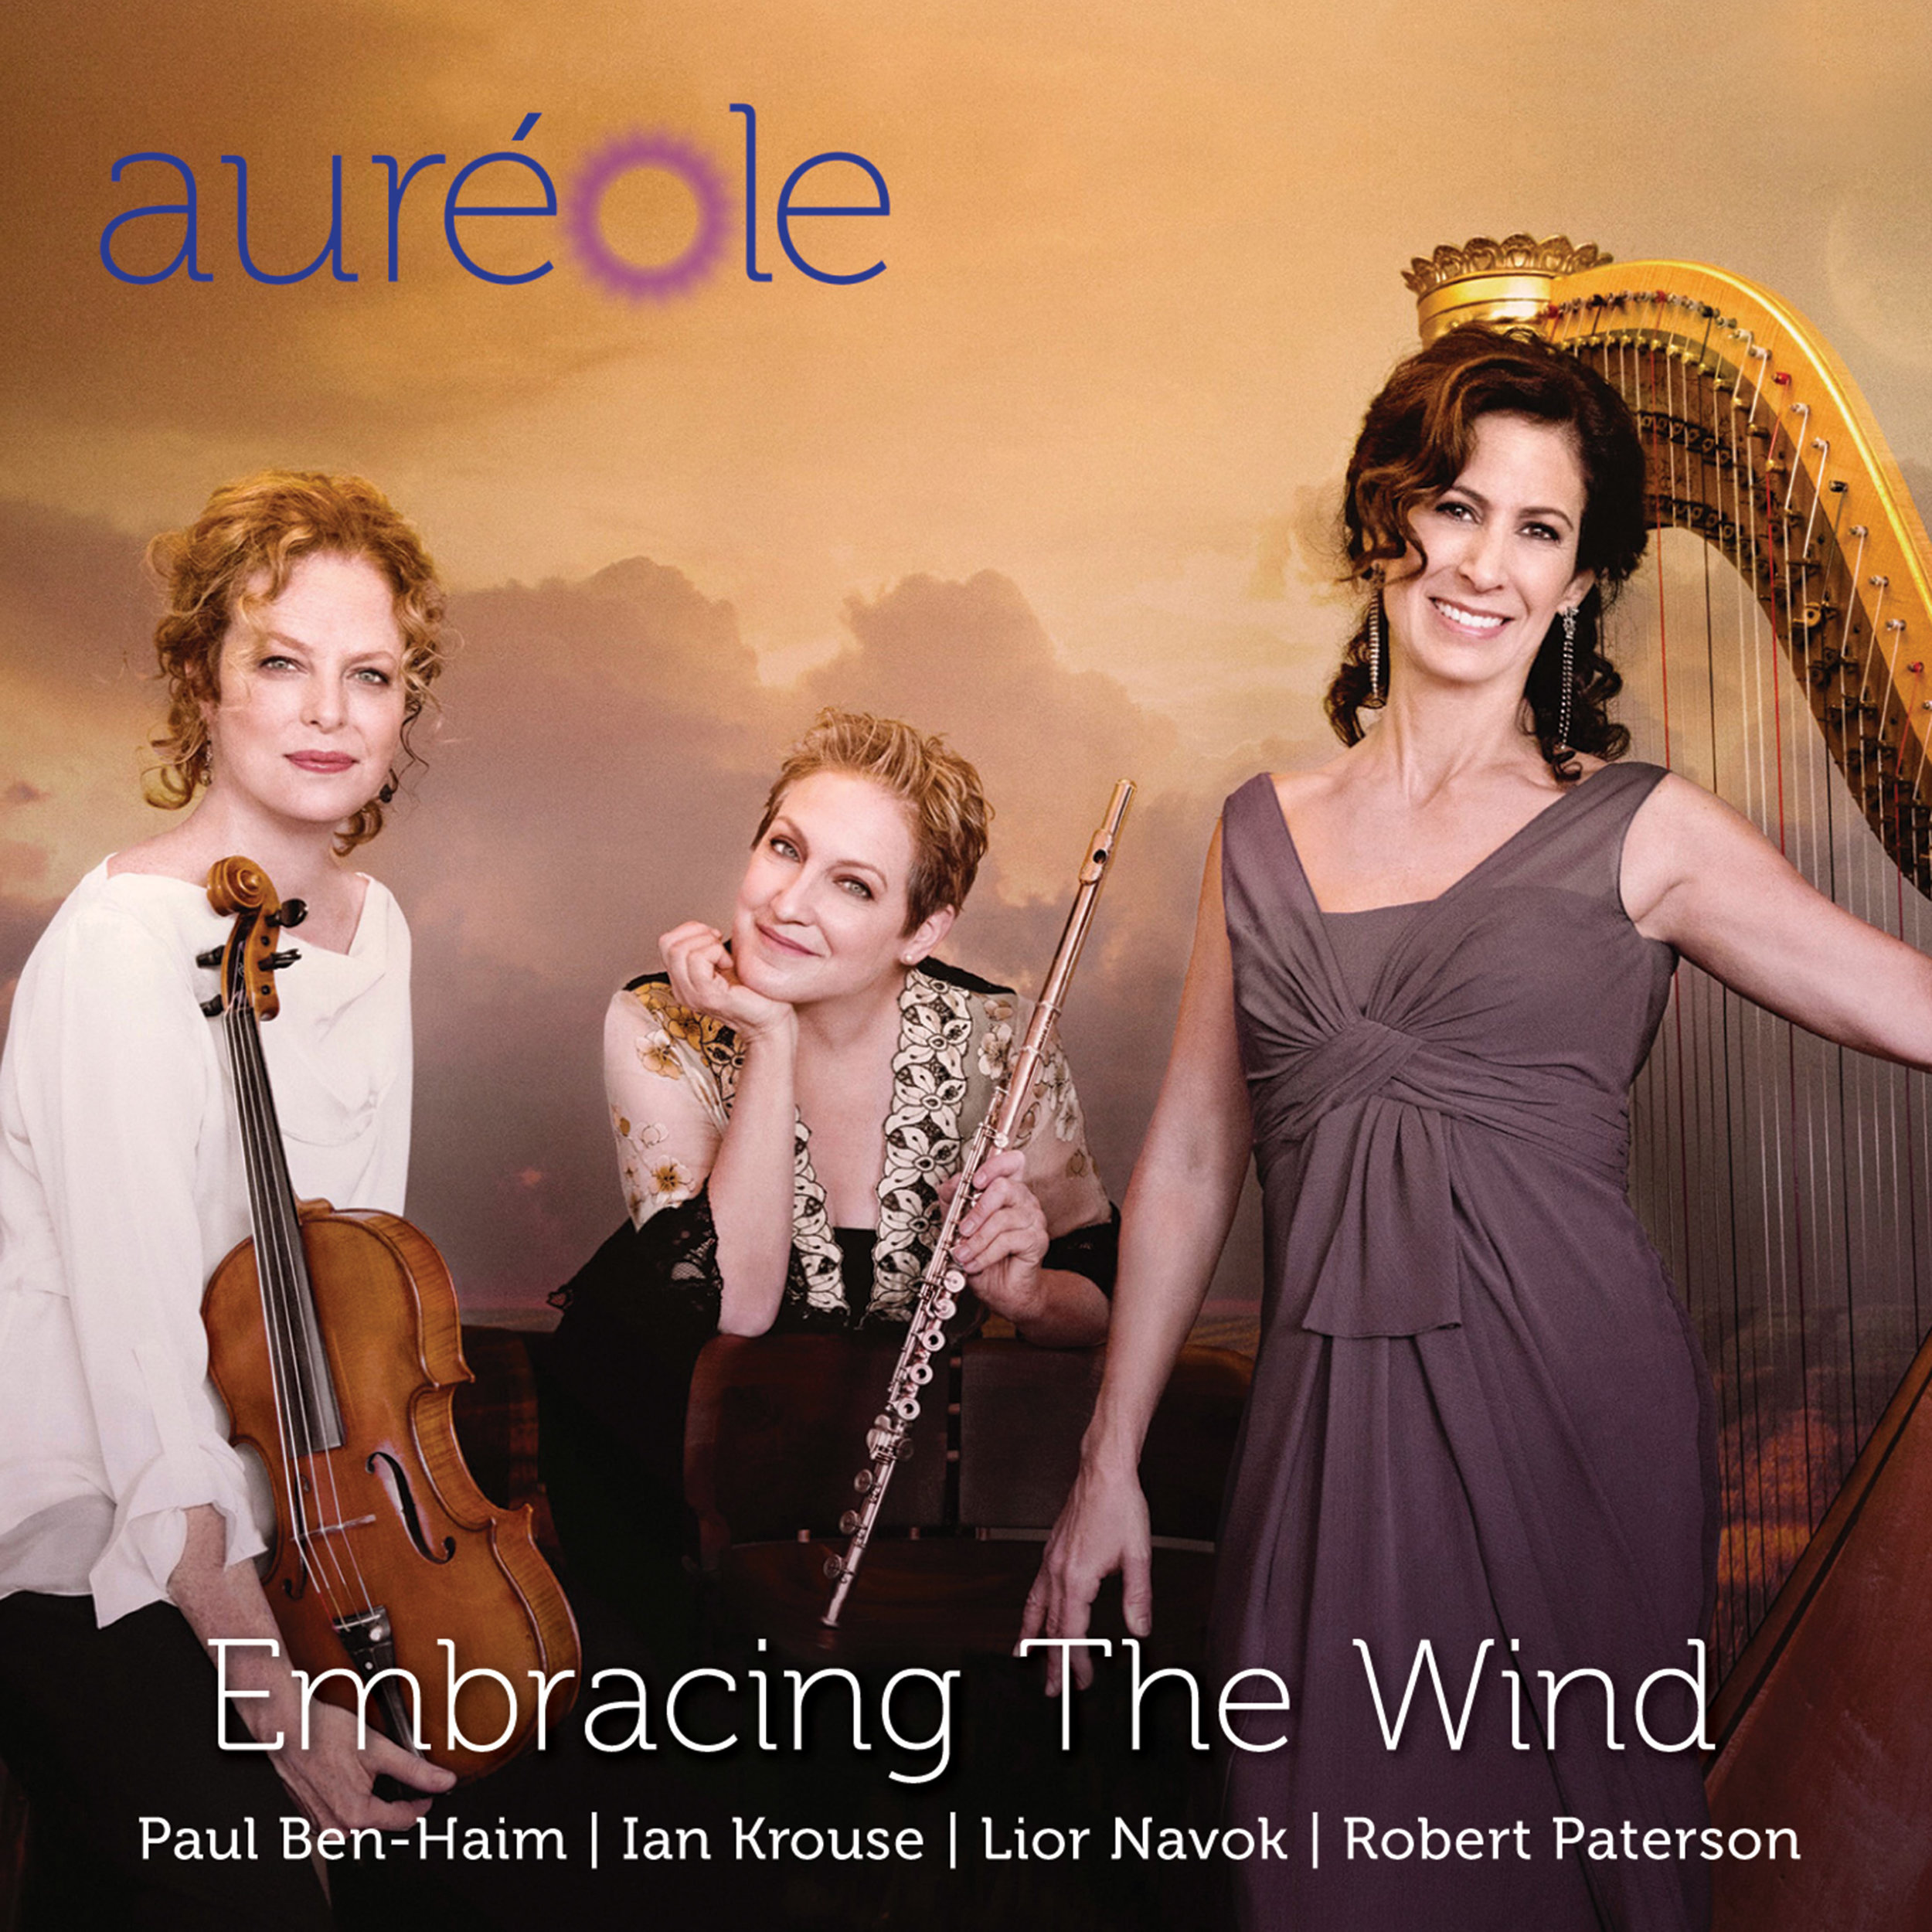 Auréole: Embracing The Wind